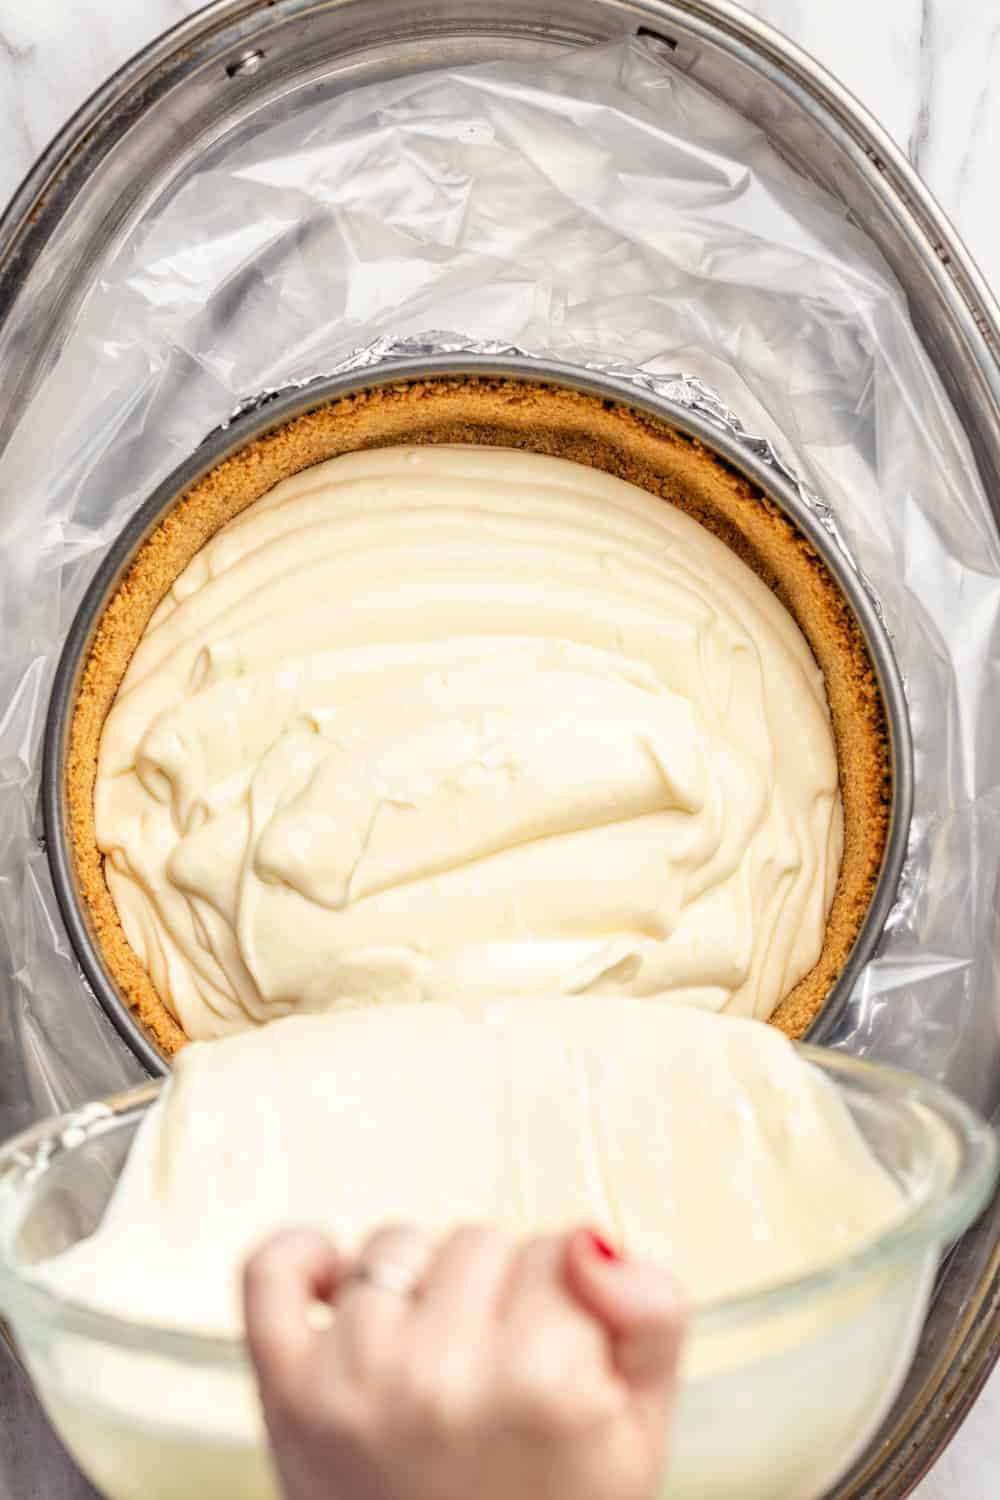 Pouring cheesecake filling into a graham cracker crust before adding a water bath